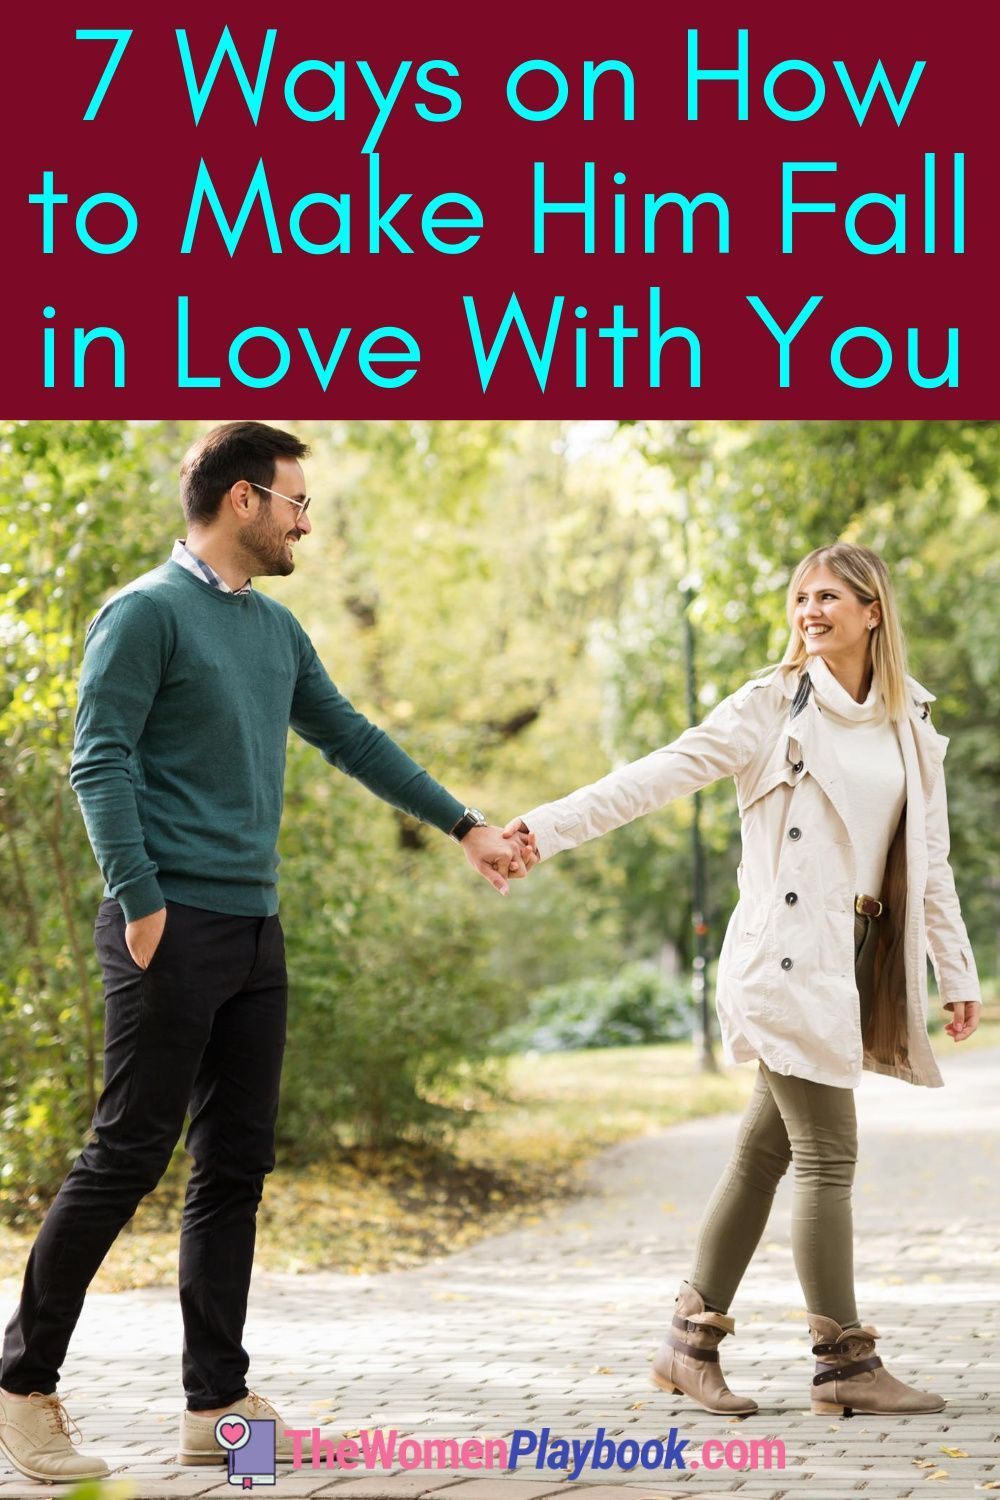 7 Ways on How to Make Him Fall in Love With You | Falling